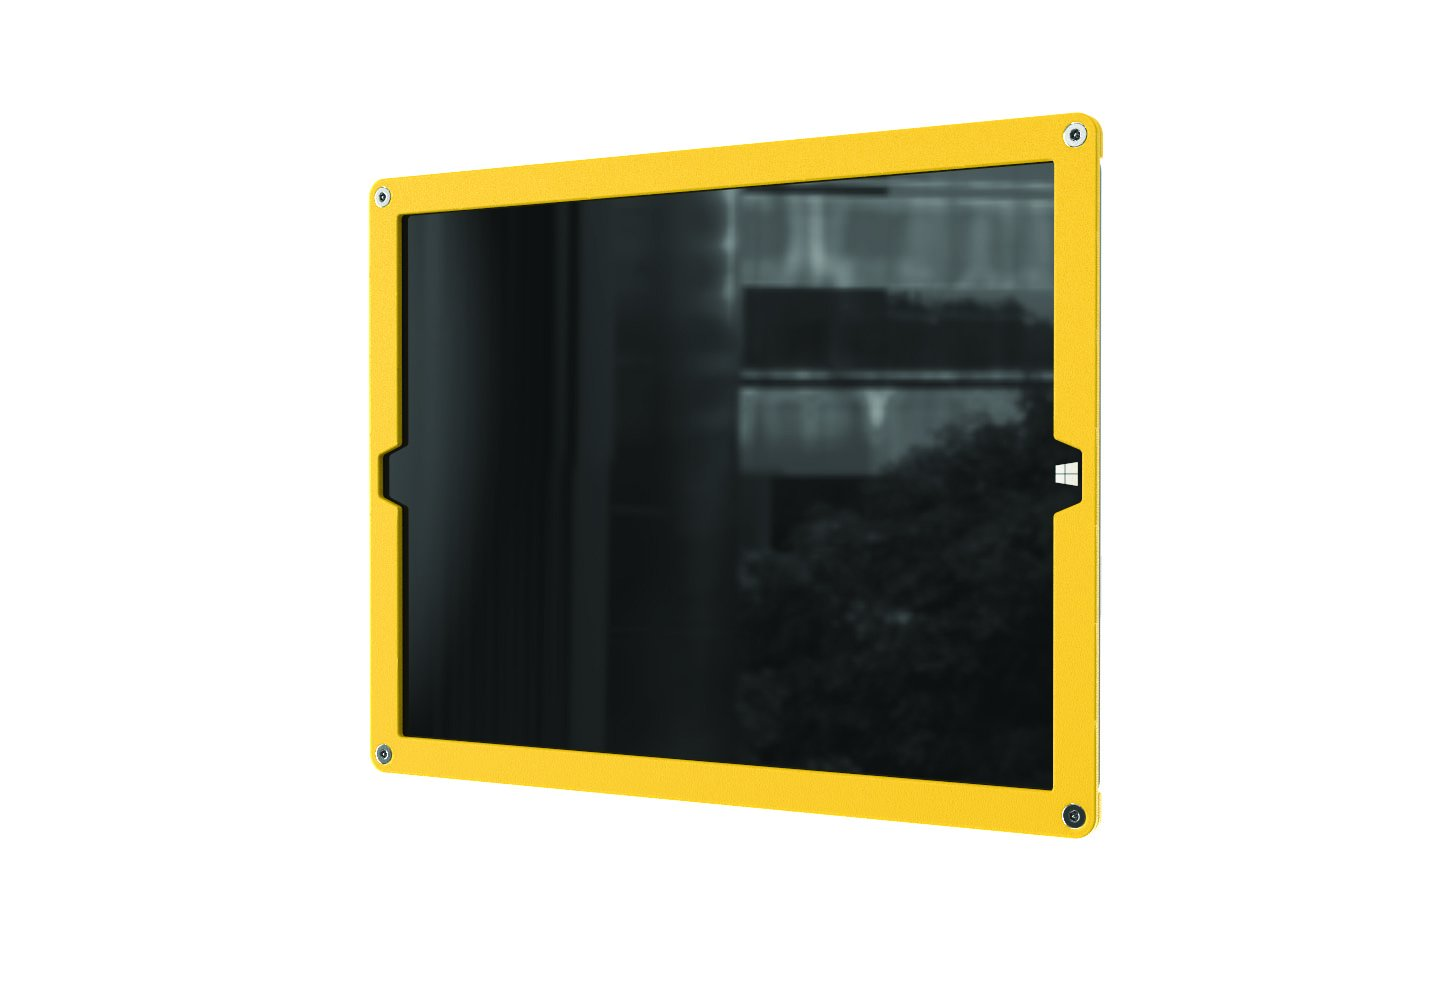 Windfall Wall Frame for Surface Pro 3, Bright Yellow